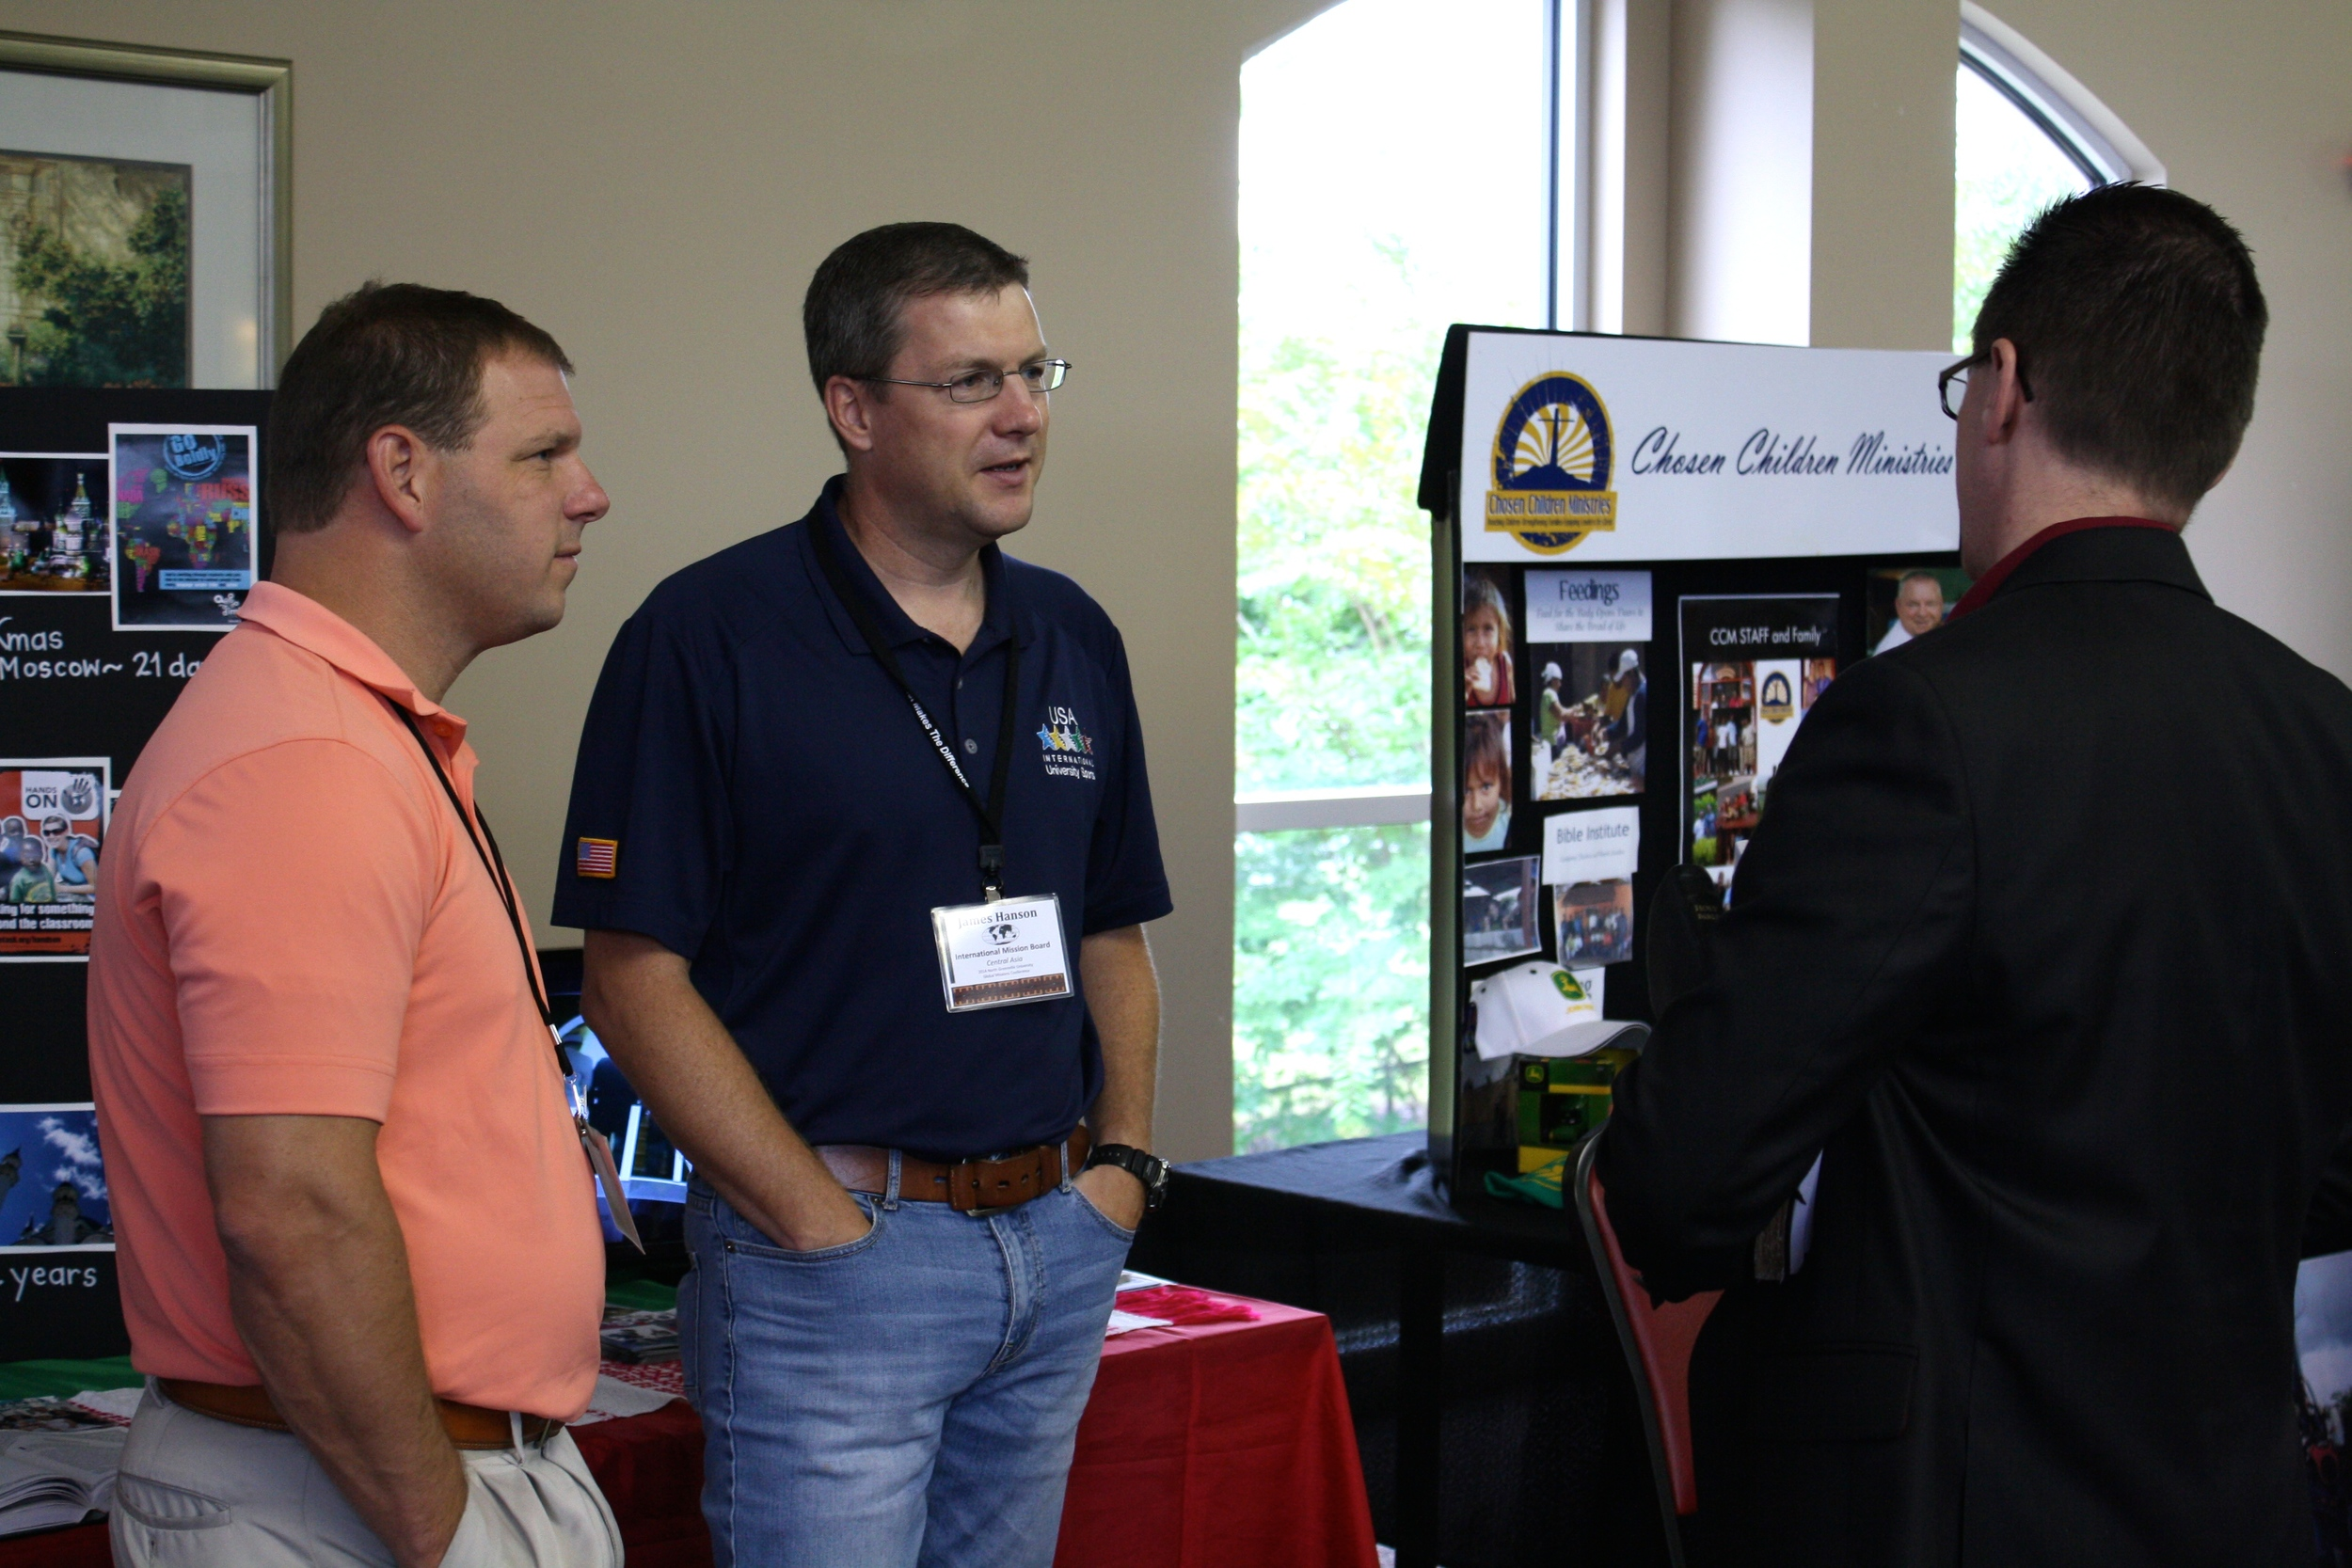 Missionaries from different ministries engage in a casual conversation during NGU's global missions week September 8-10.